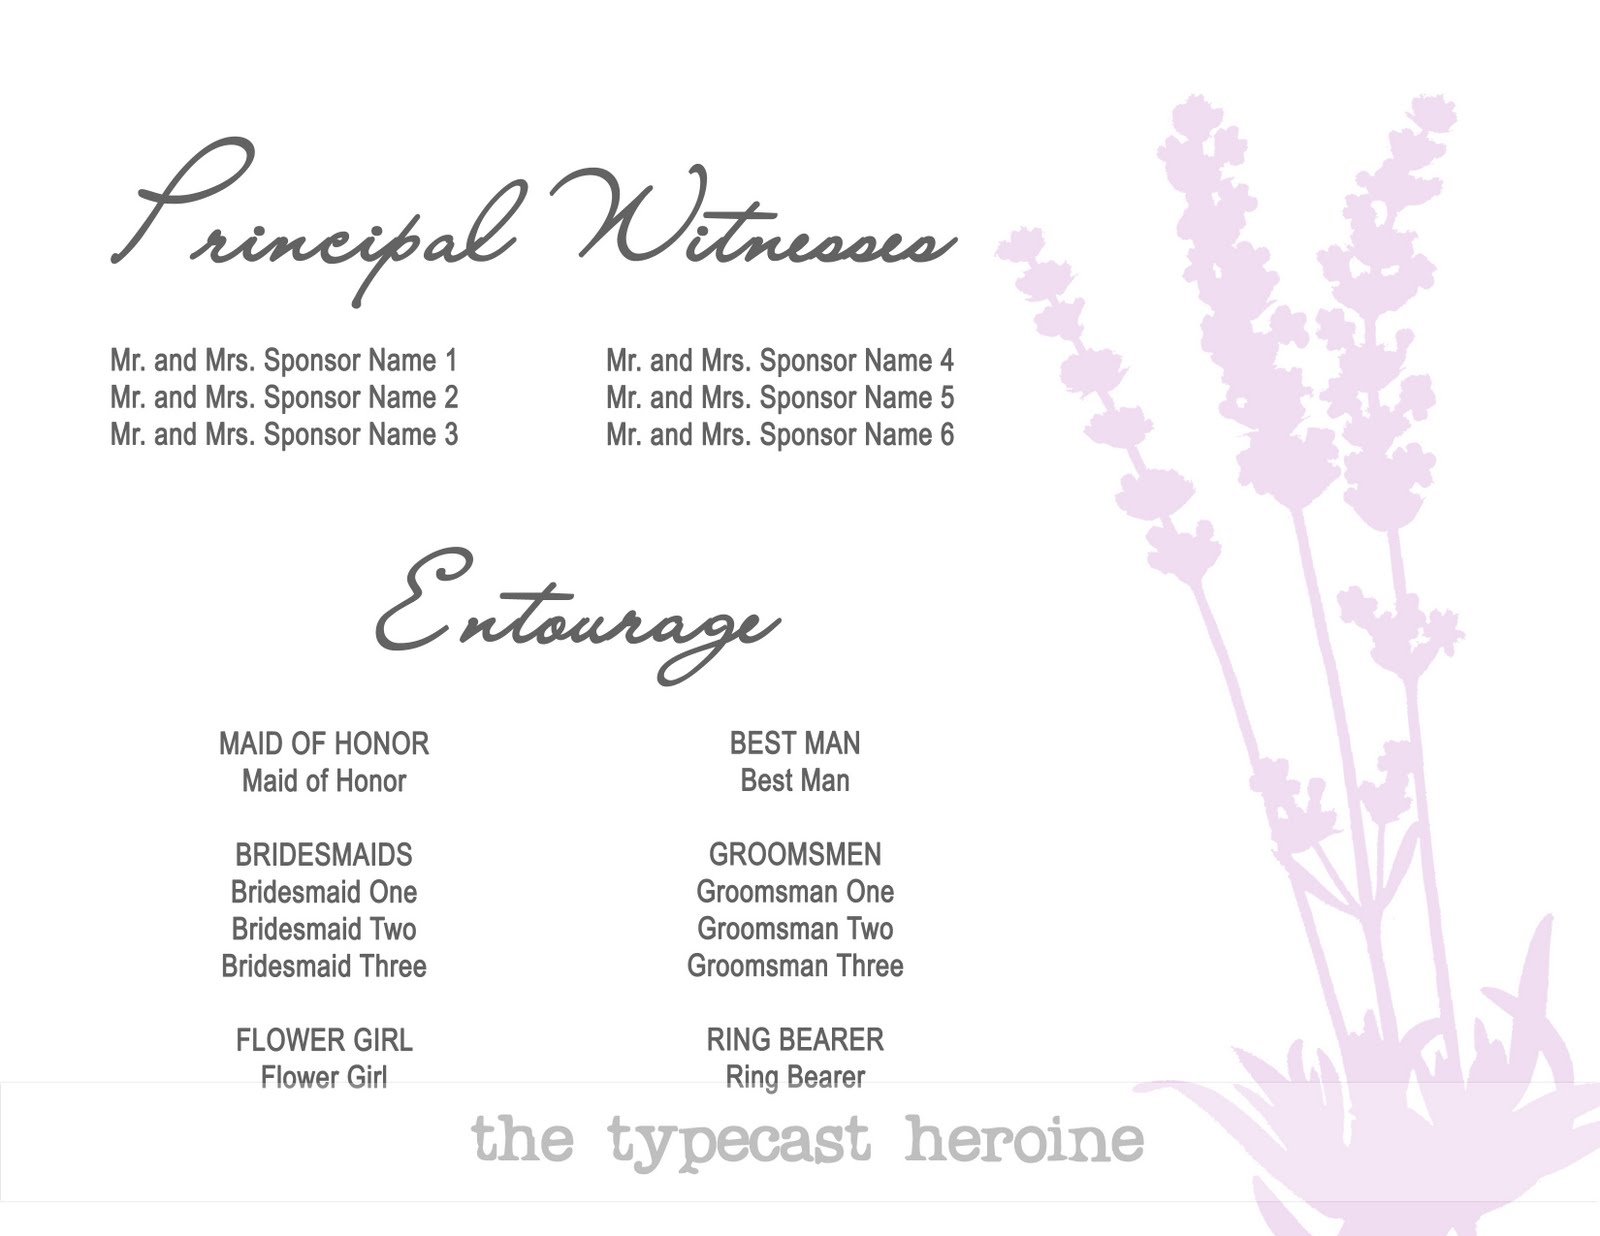 Sample Wedding Entourage List Invitation http://quilledthoughts.blogspot.com/2011/08/invitations.html